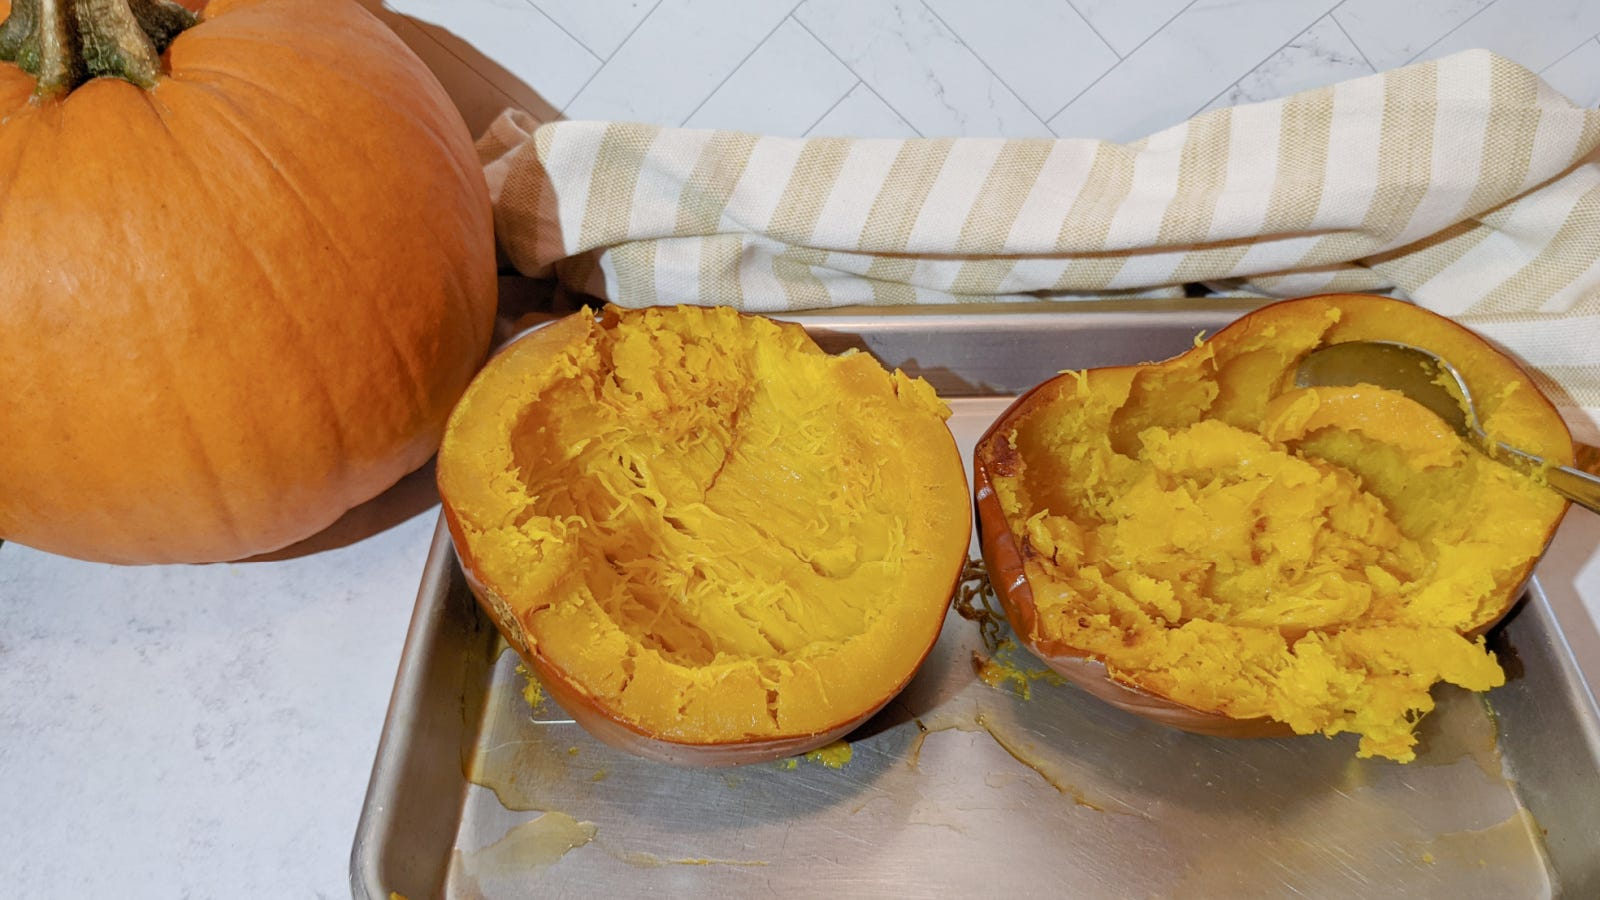 A sugar pumpkin fresh out of the oven, with the inside squash softened and cooked.